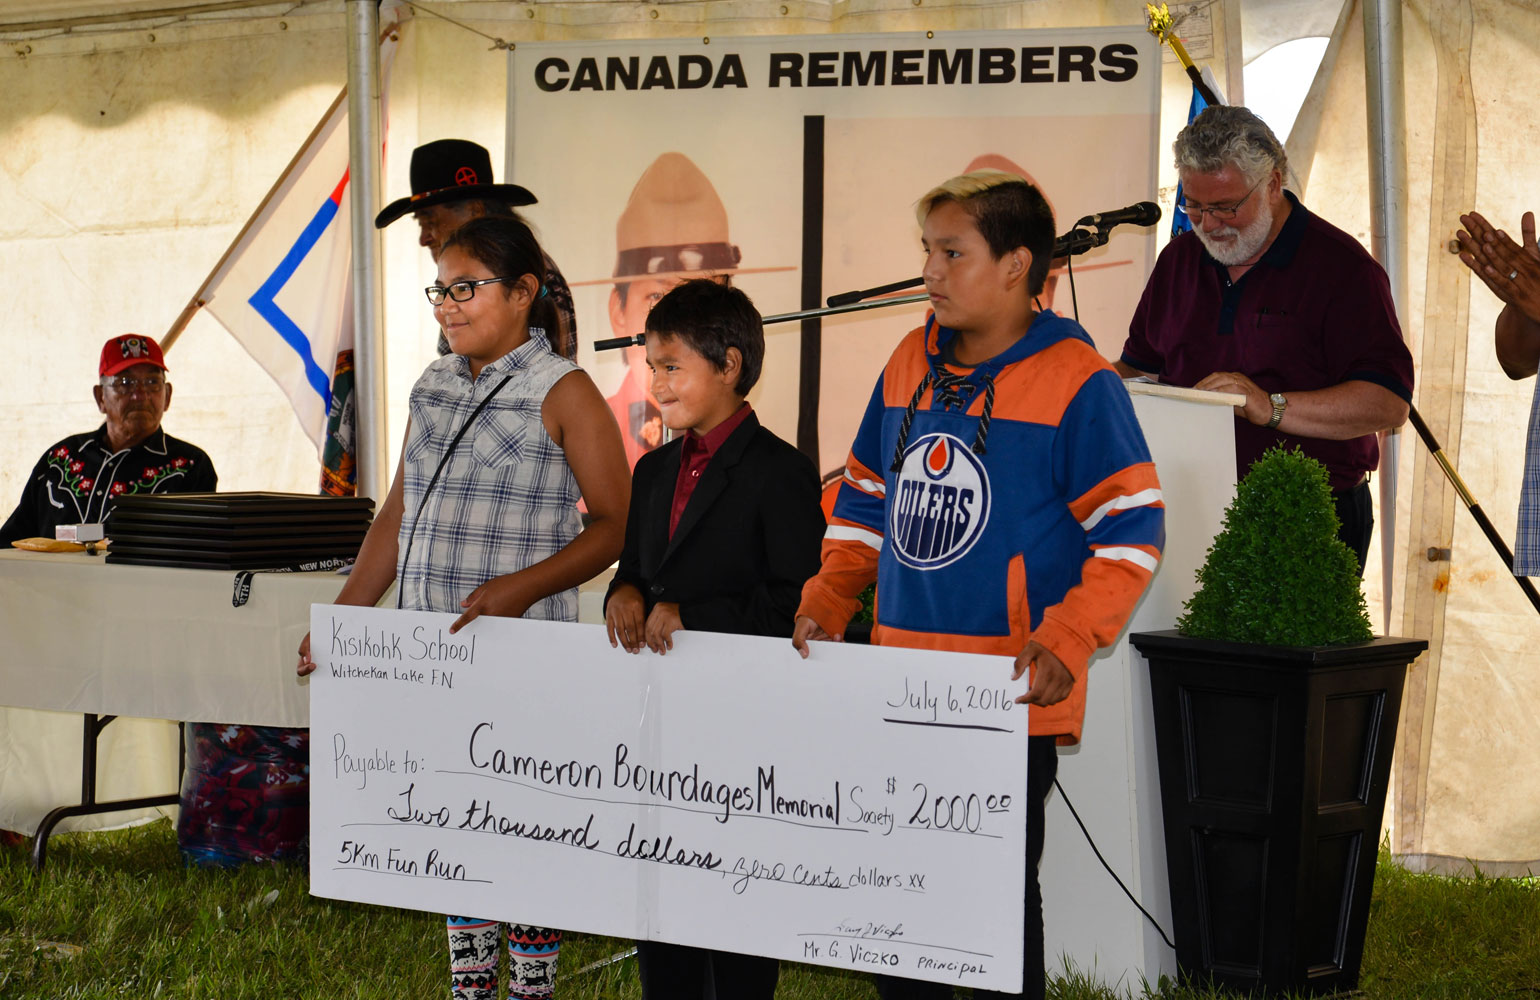 Students from Kisikohk School raised $2000 for Bourdages Cameron foundation.